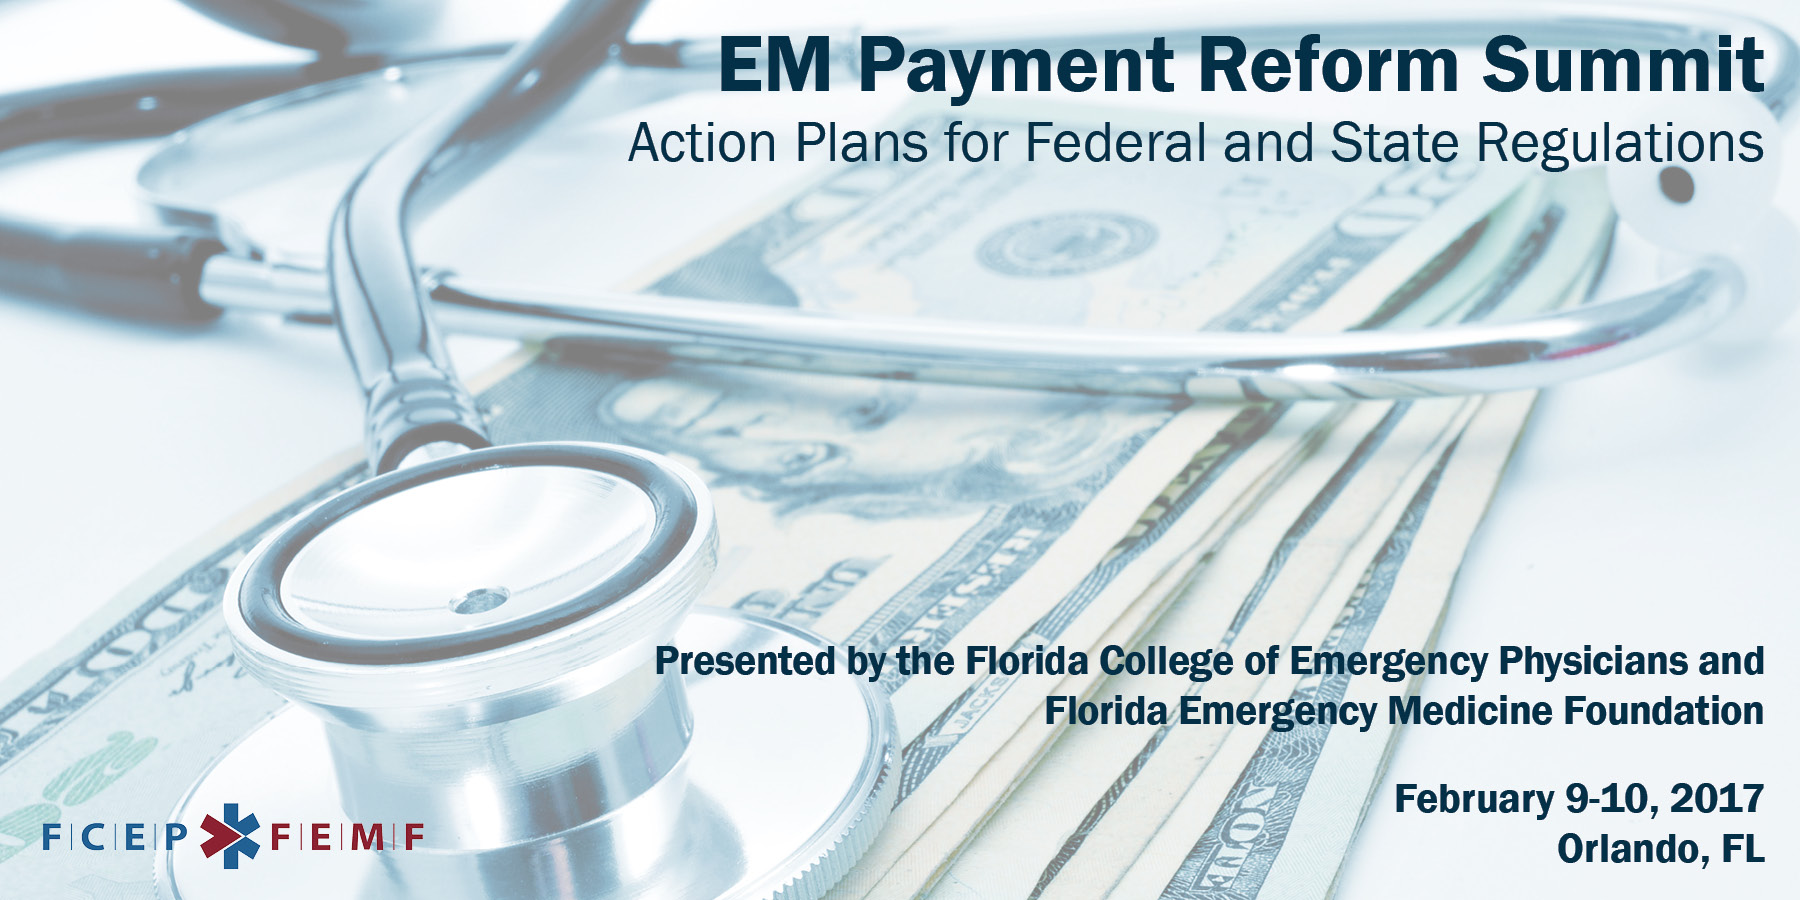 em payment reform summit 2017 save the date